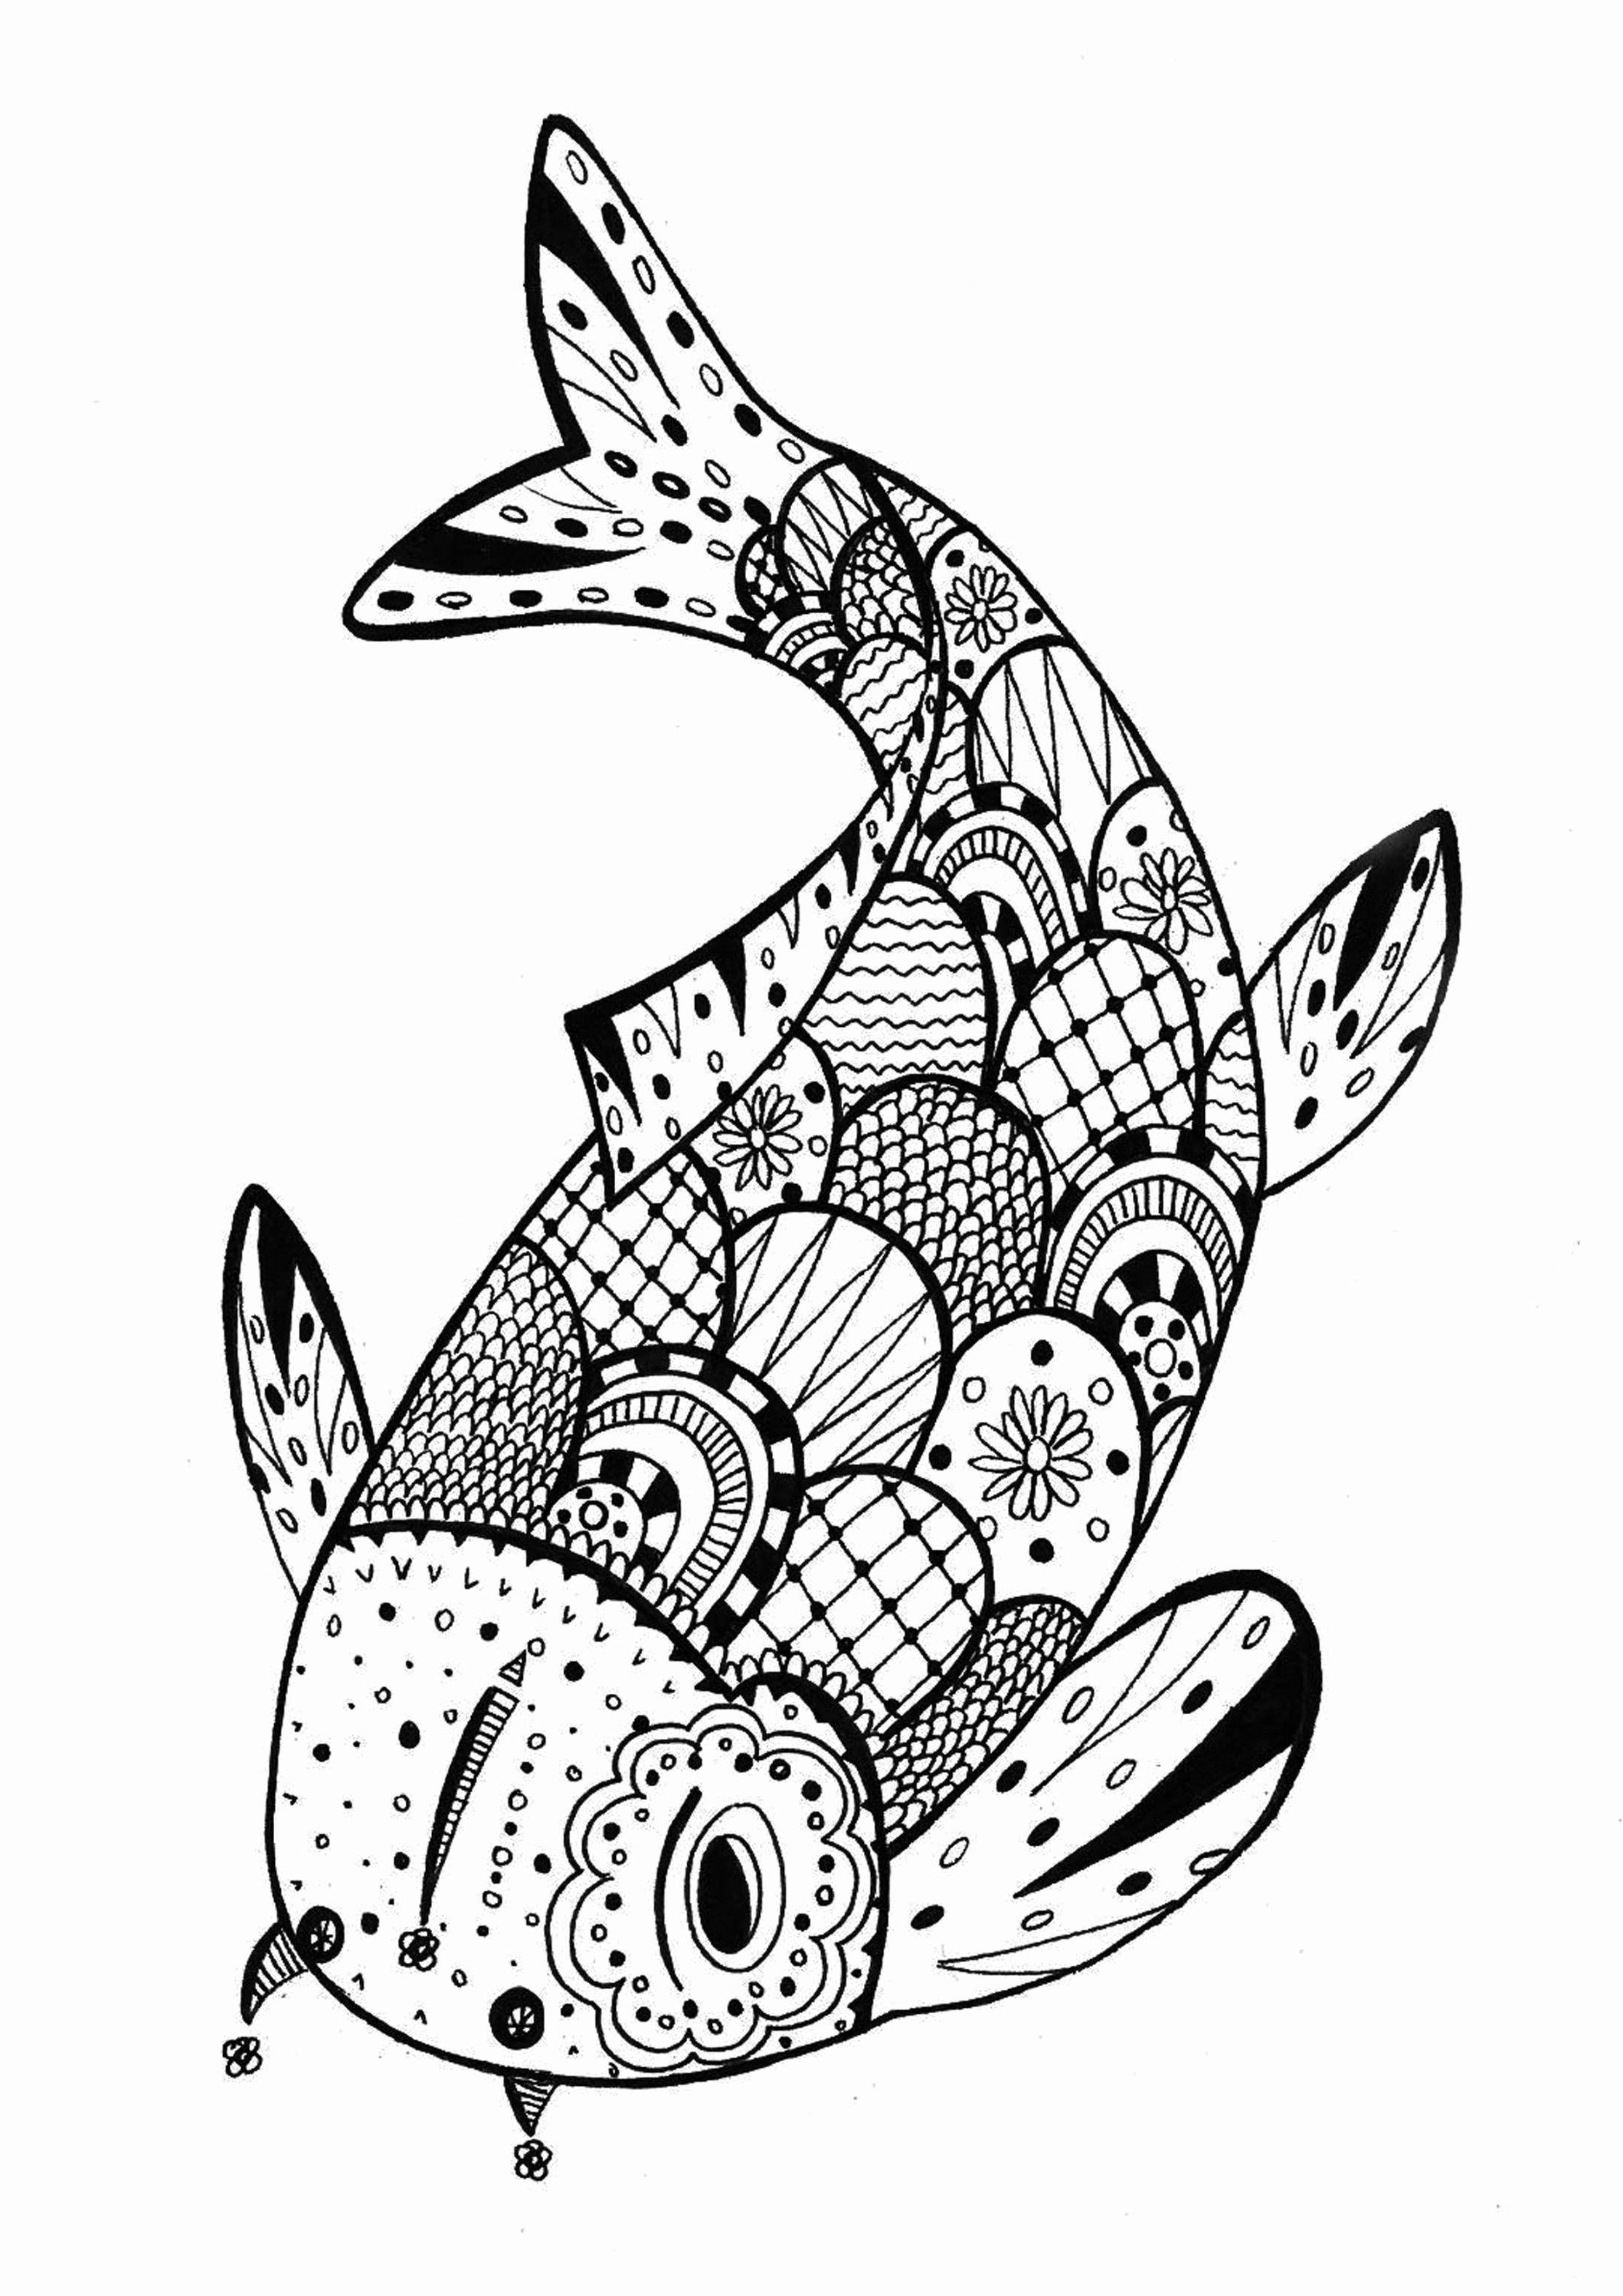 Coloring Animal Jpg Beautiful Best Animals In Water Coloring Pages Kursknews Zoo Animal Coloring Pages Animal Coloring Books Whale Coloring Pages